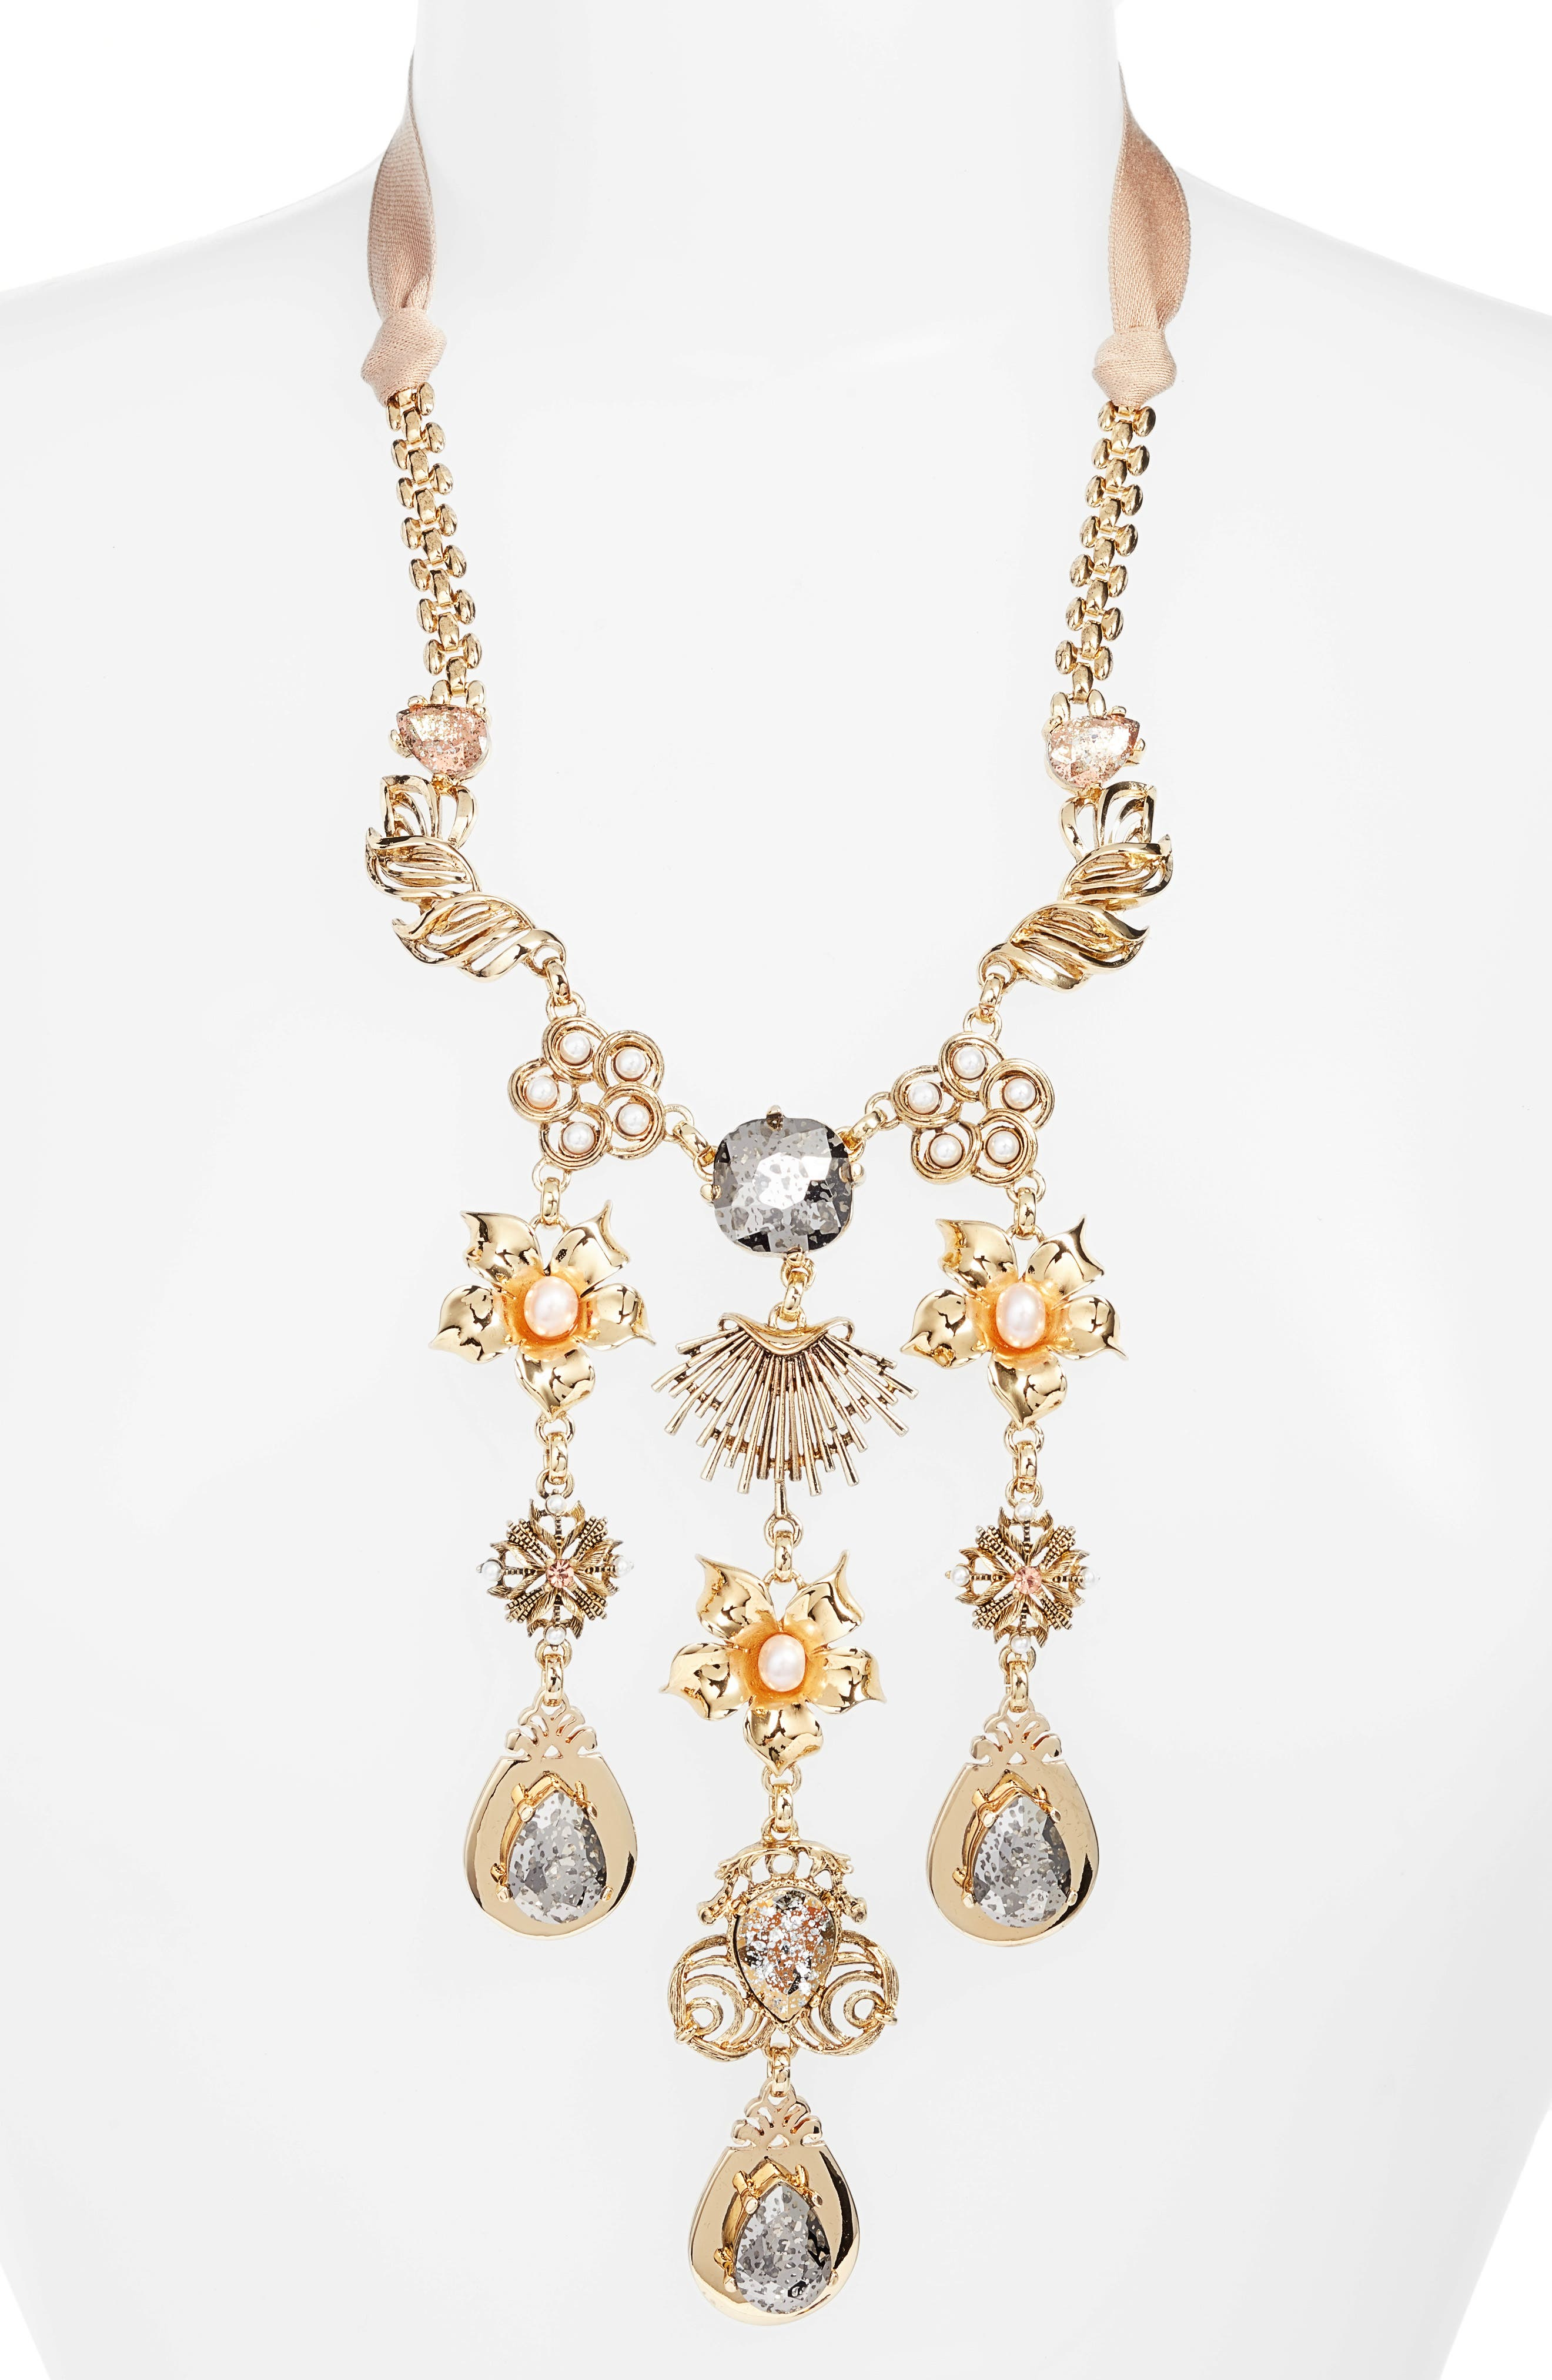 Crystal & Freshwater Pearl Collar Necklace,                             Alternate thumbnail 2, color,                             GOLD